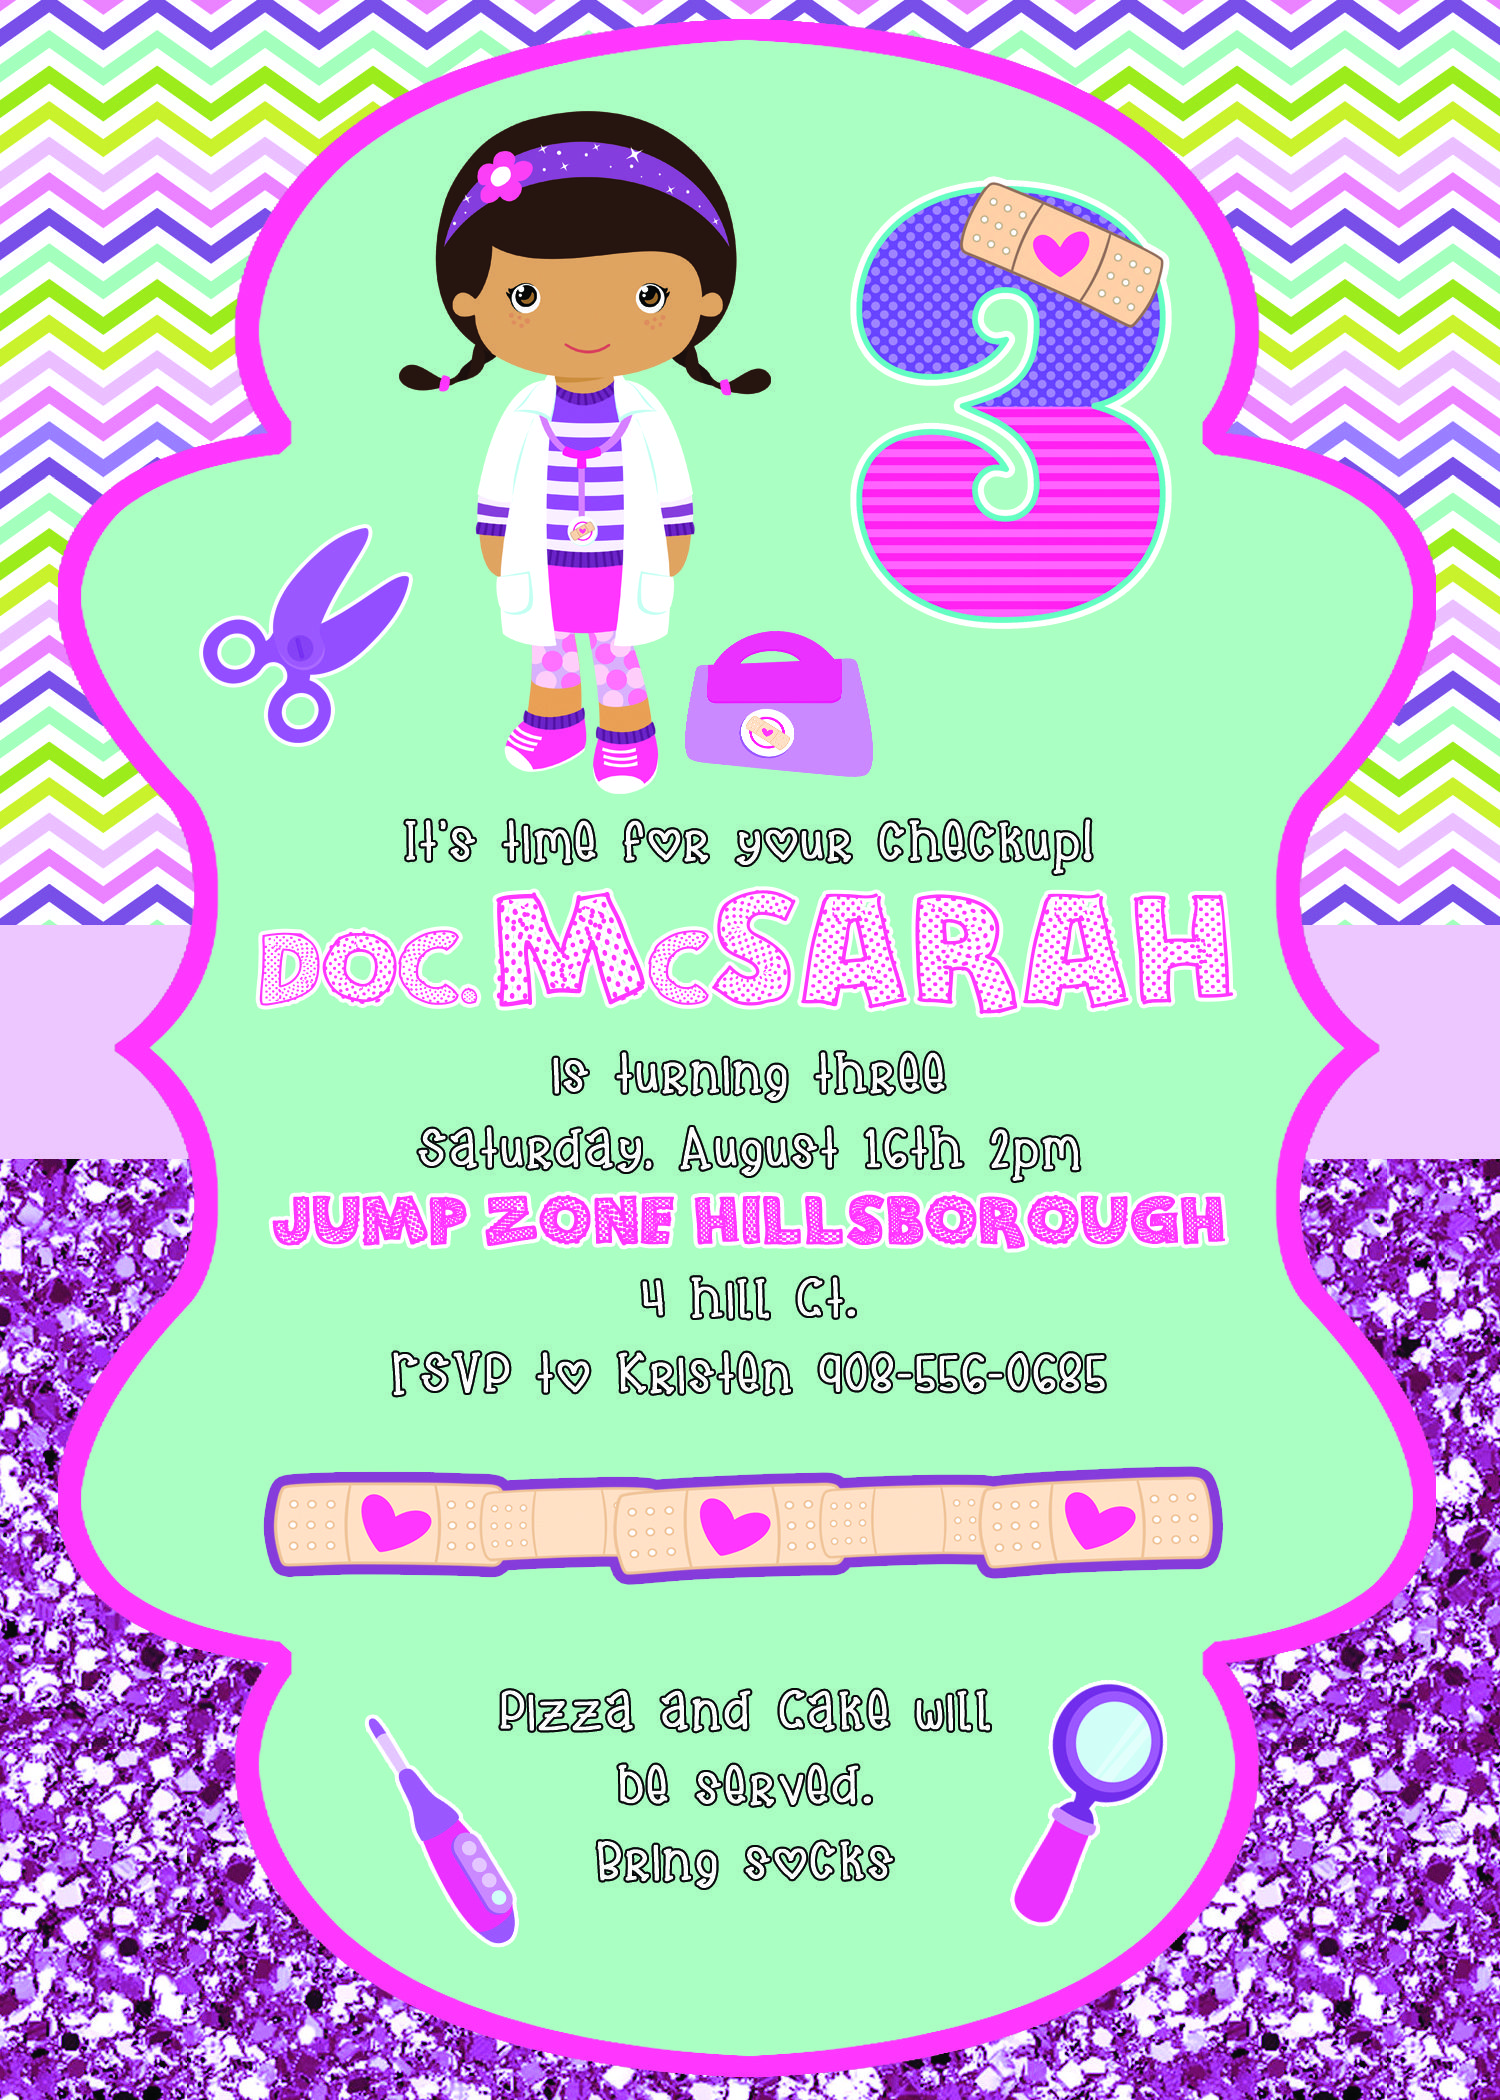 Doc Mcstuffins 5x7 party invitation $10.00 | Pattycakes Papers ...